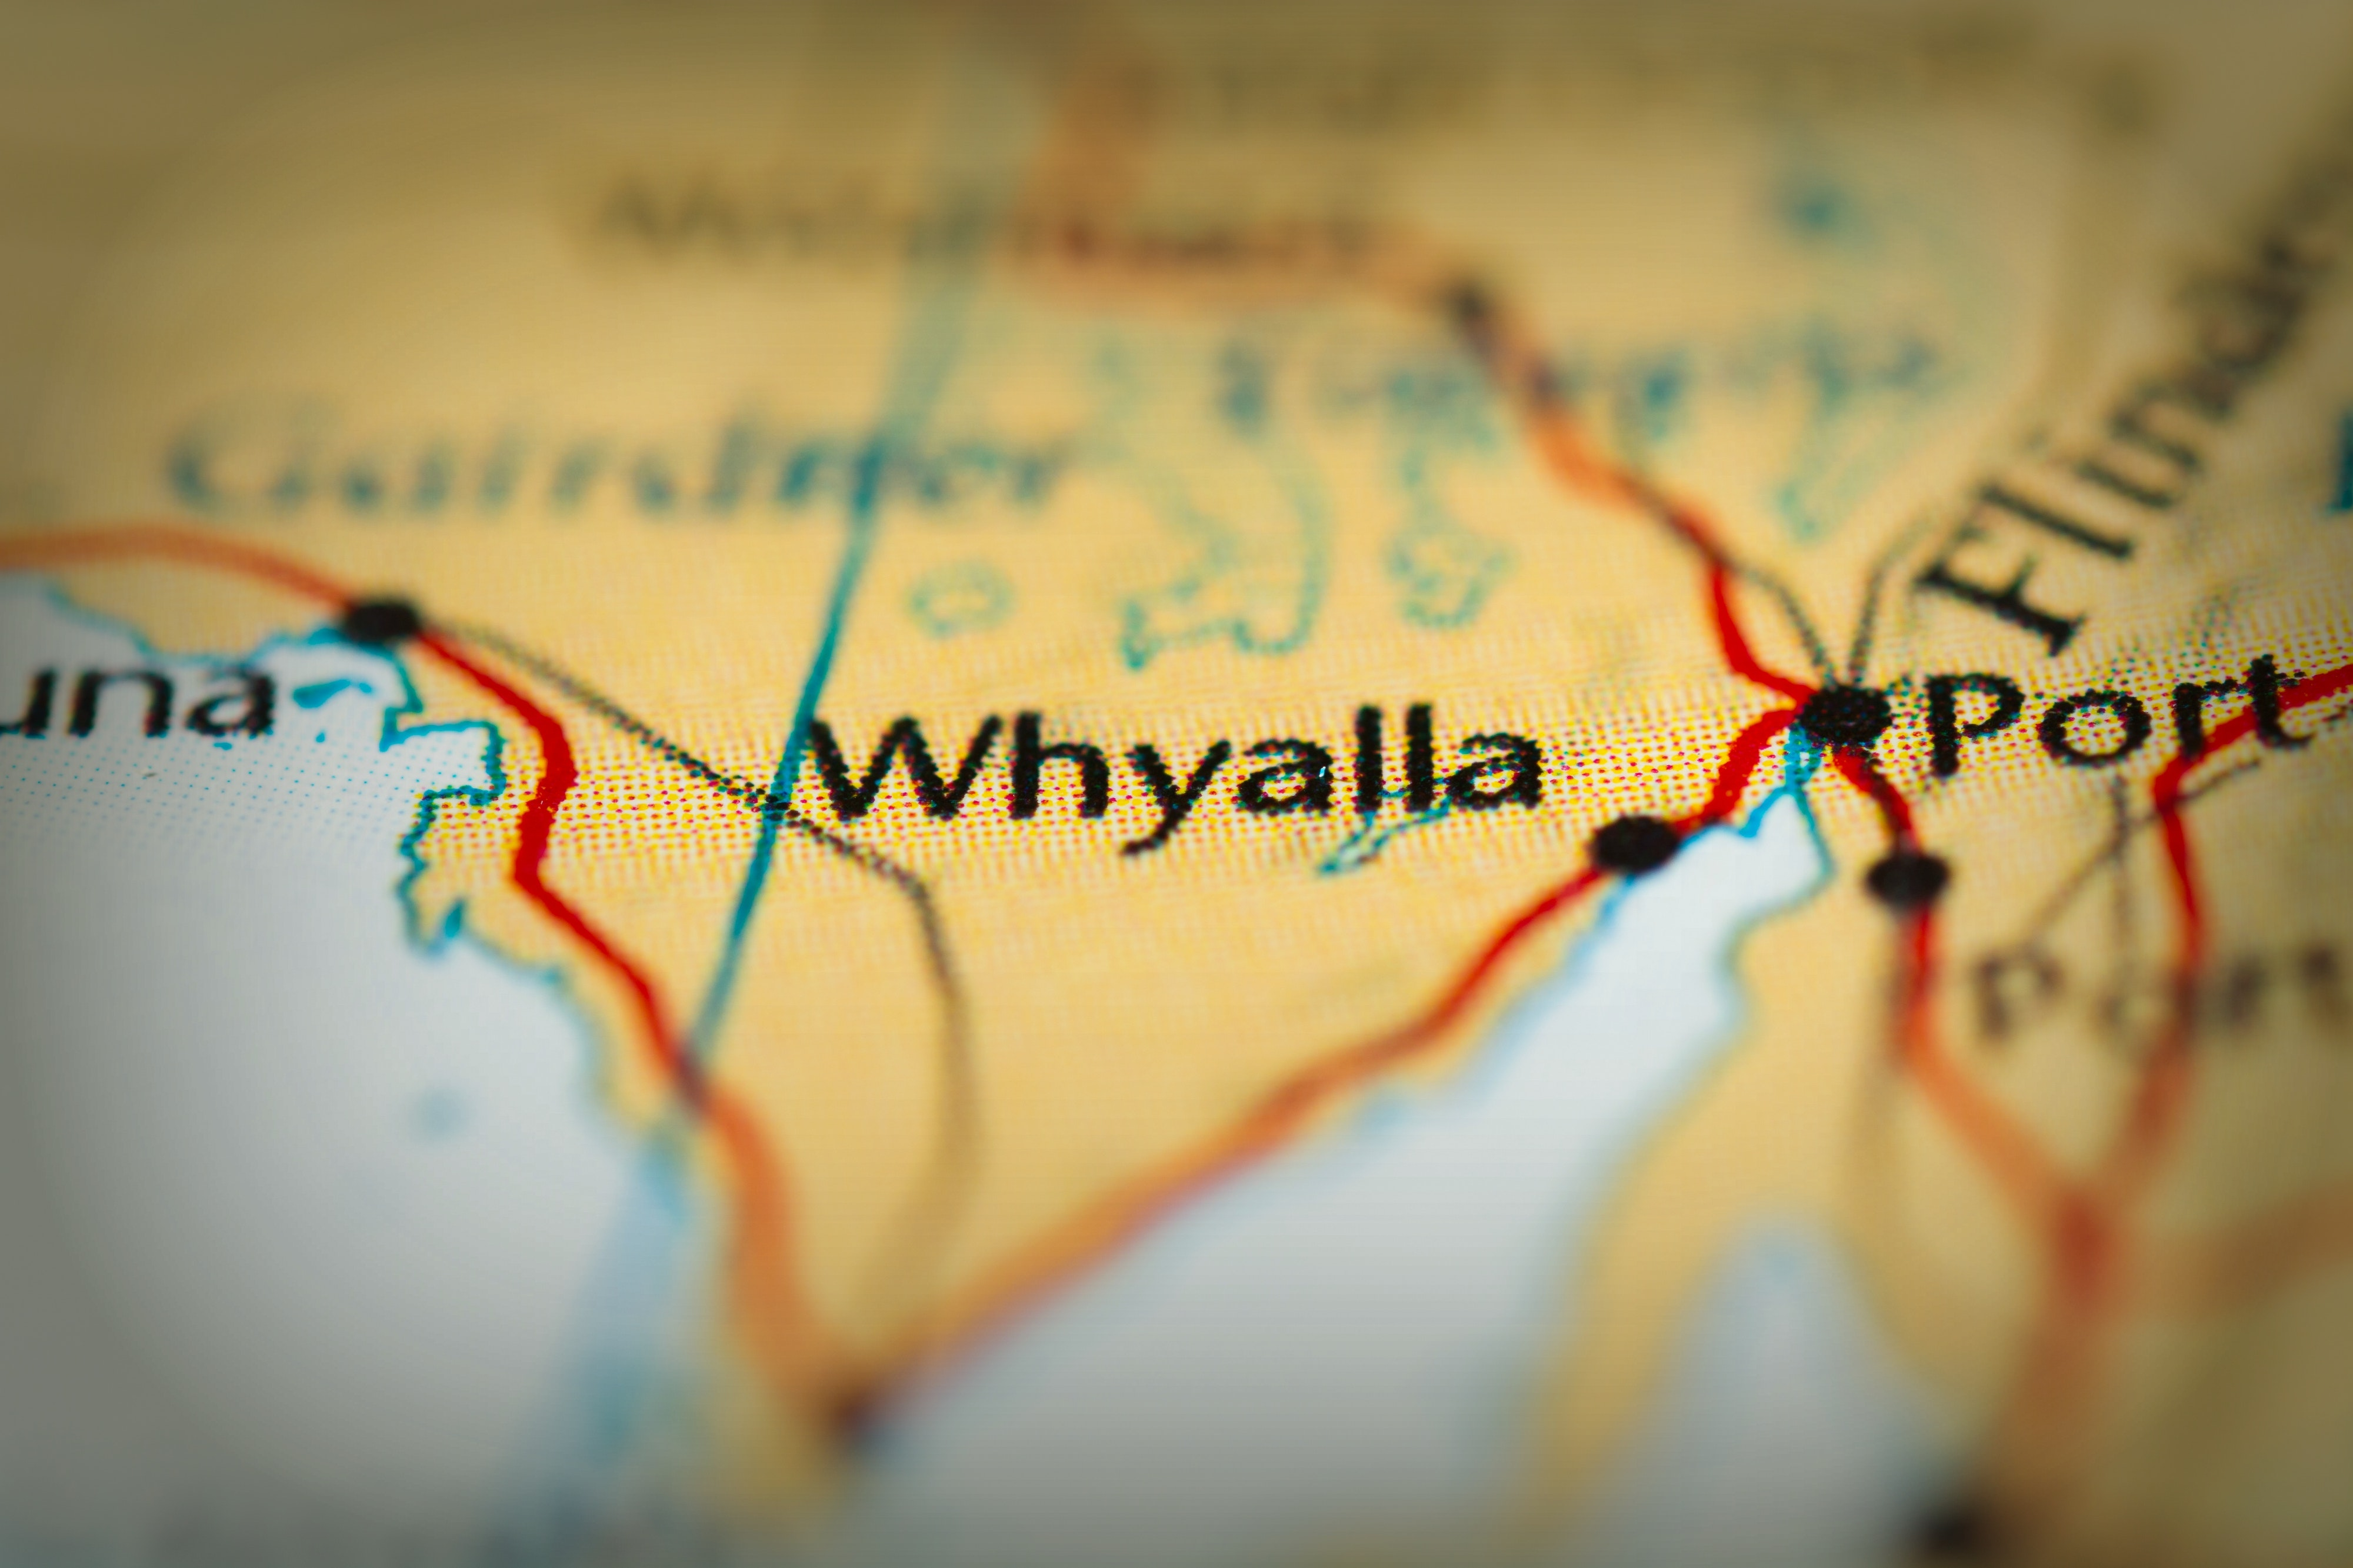 Not wiped out. Why Whyalla, of all places, now has a sustainable future